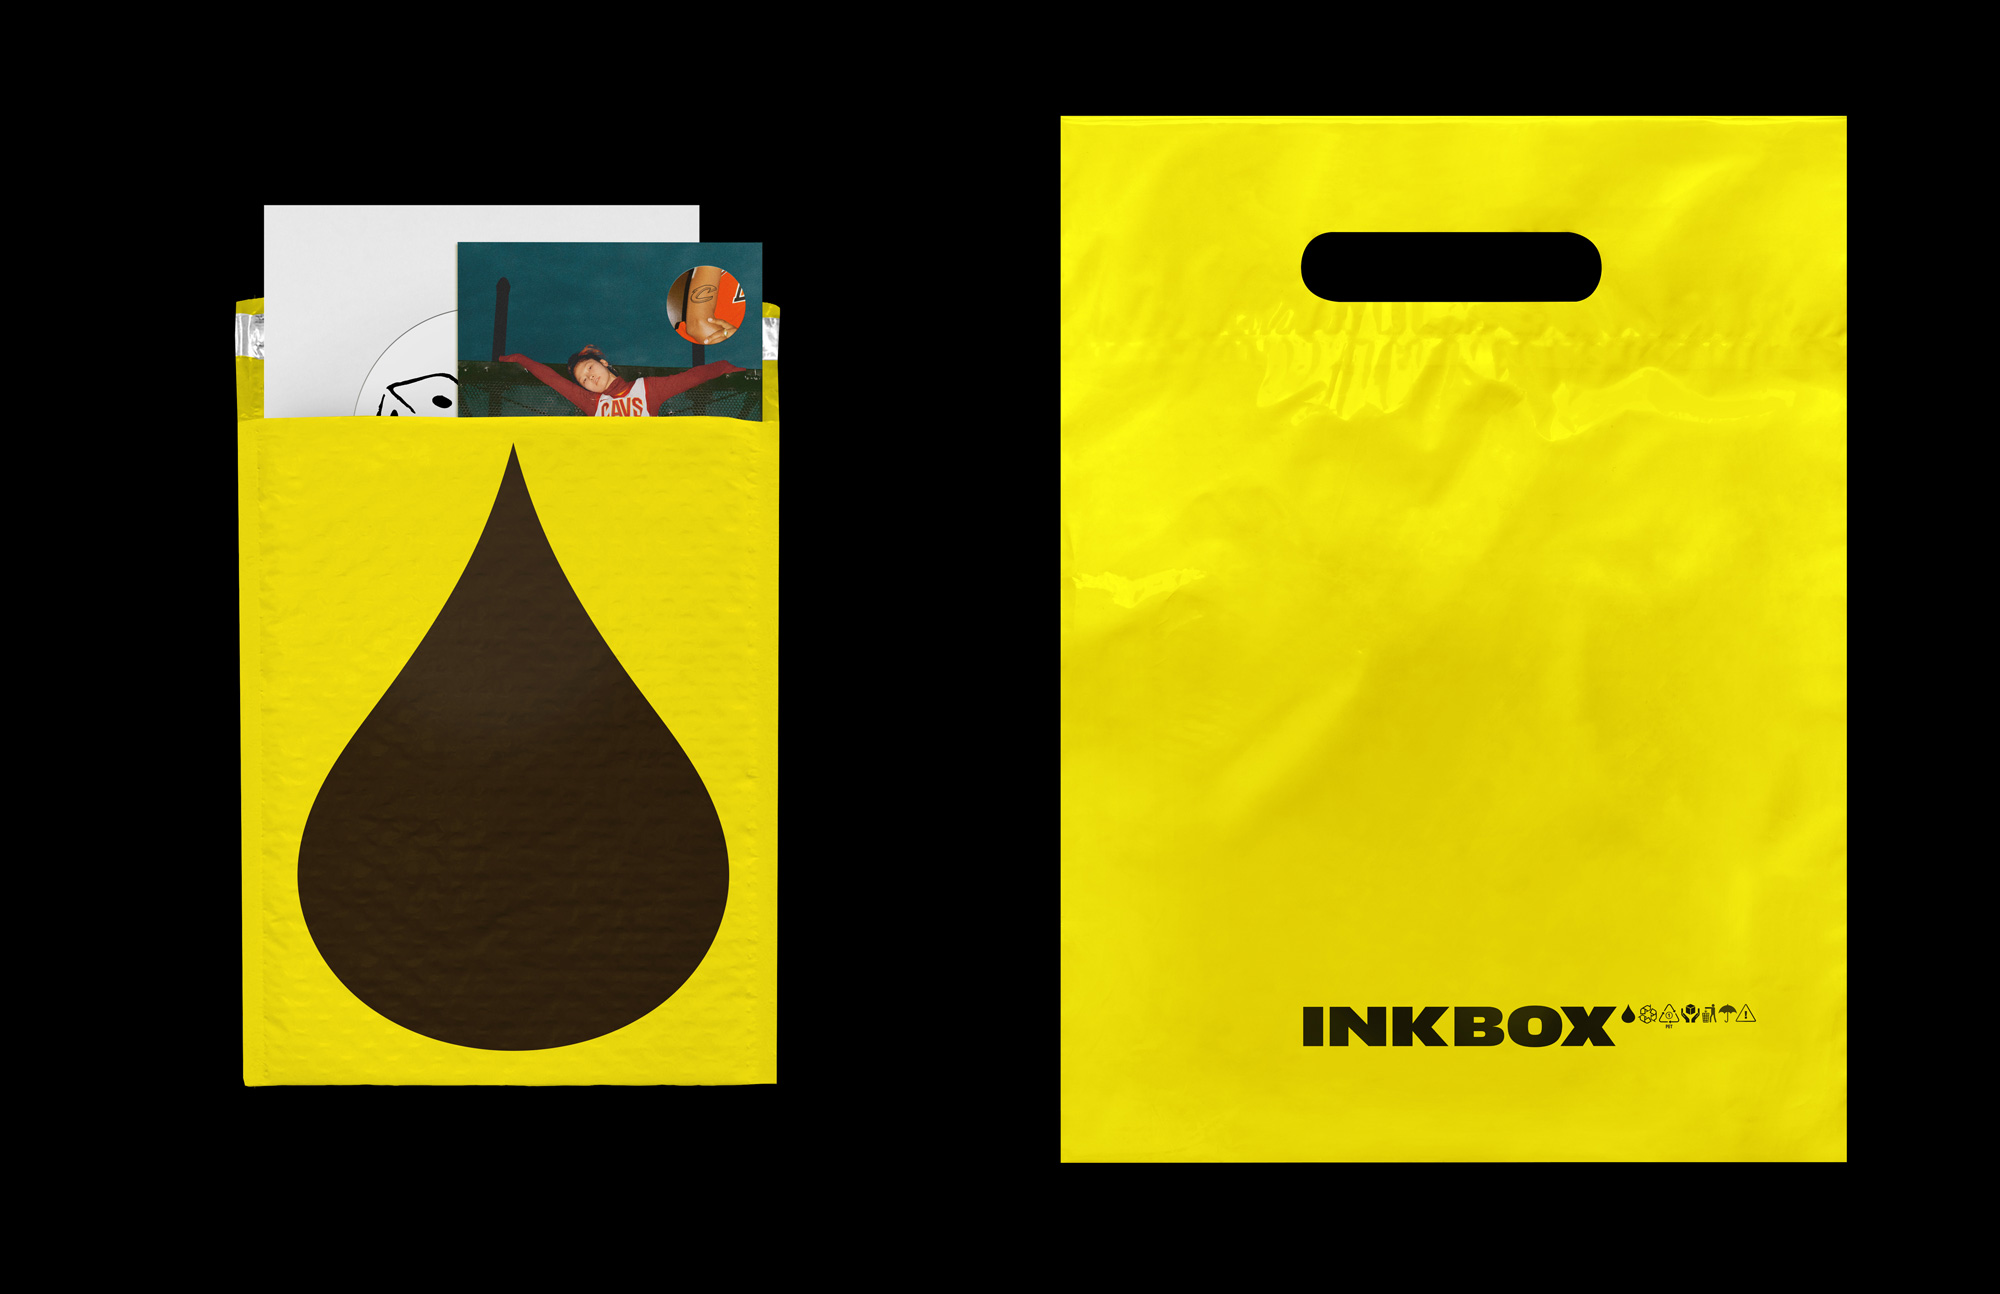 Follow-up: New Logo and Identity for Inkbox by Concrete